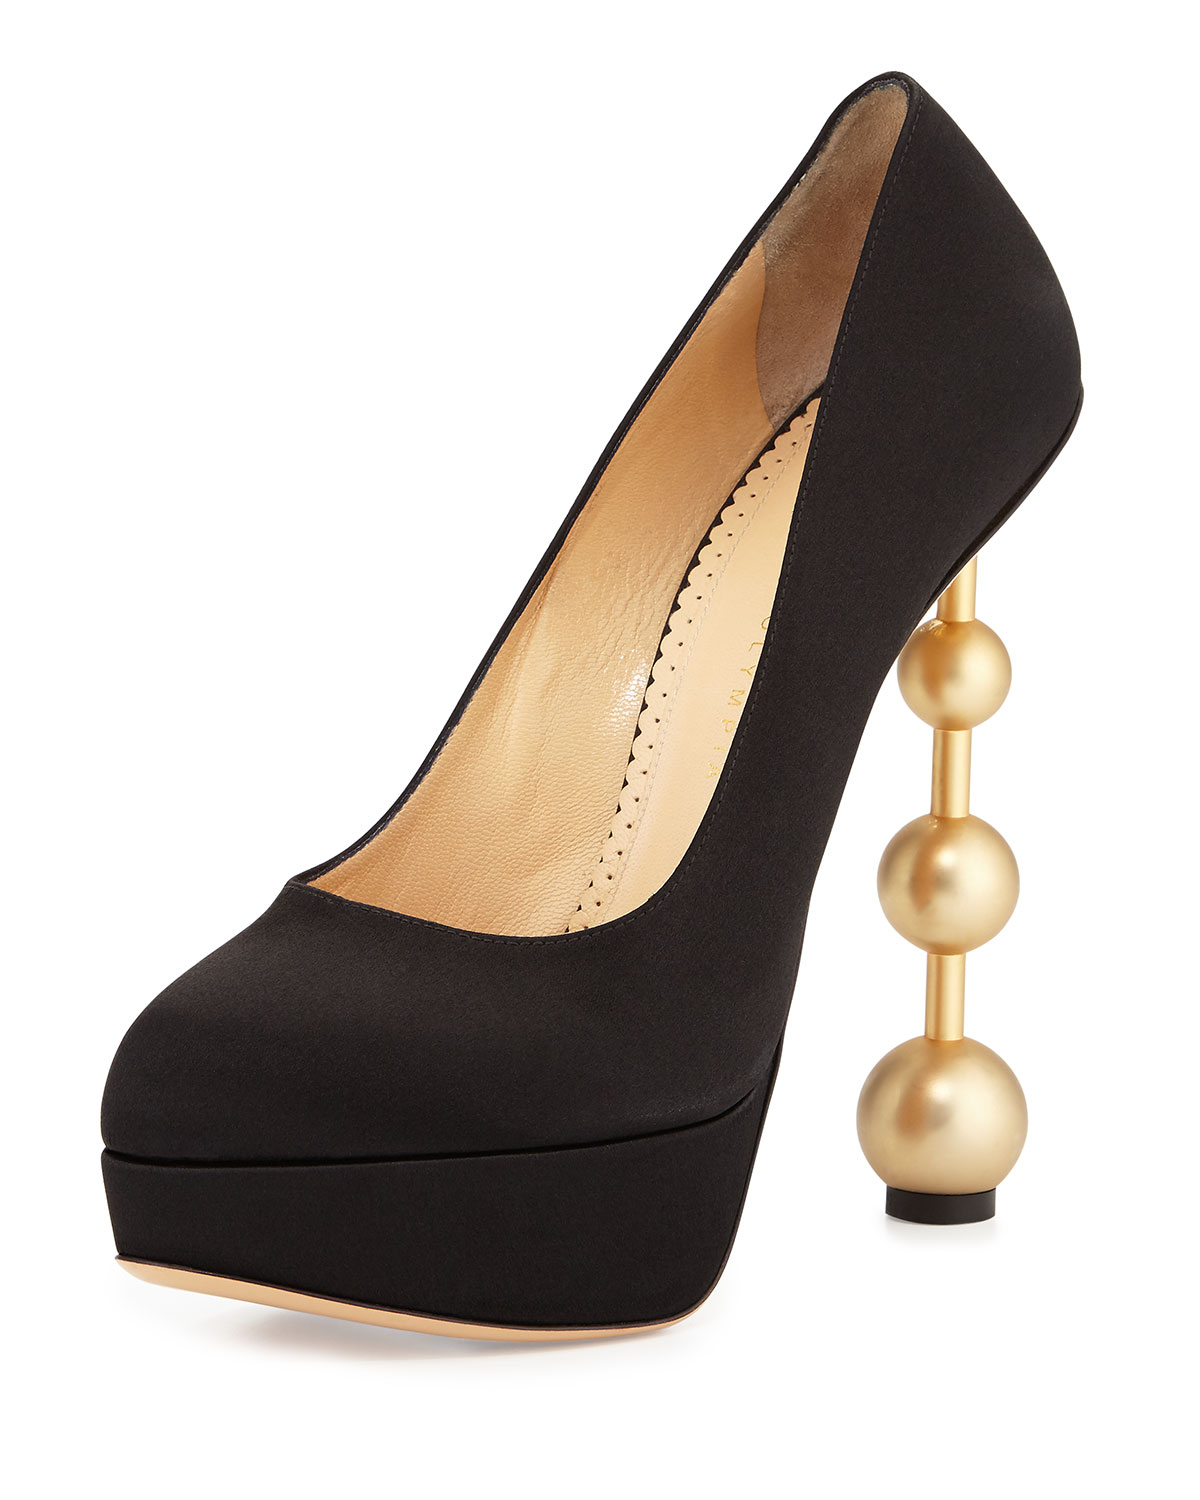 Century Heels Silk Pin-Heel Pump, Black